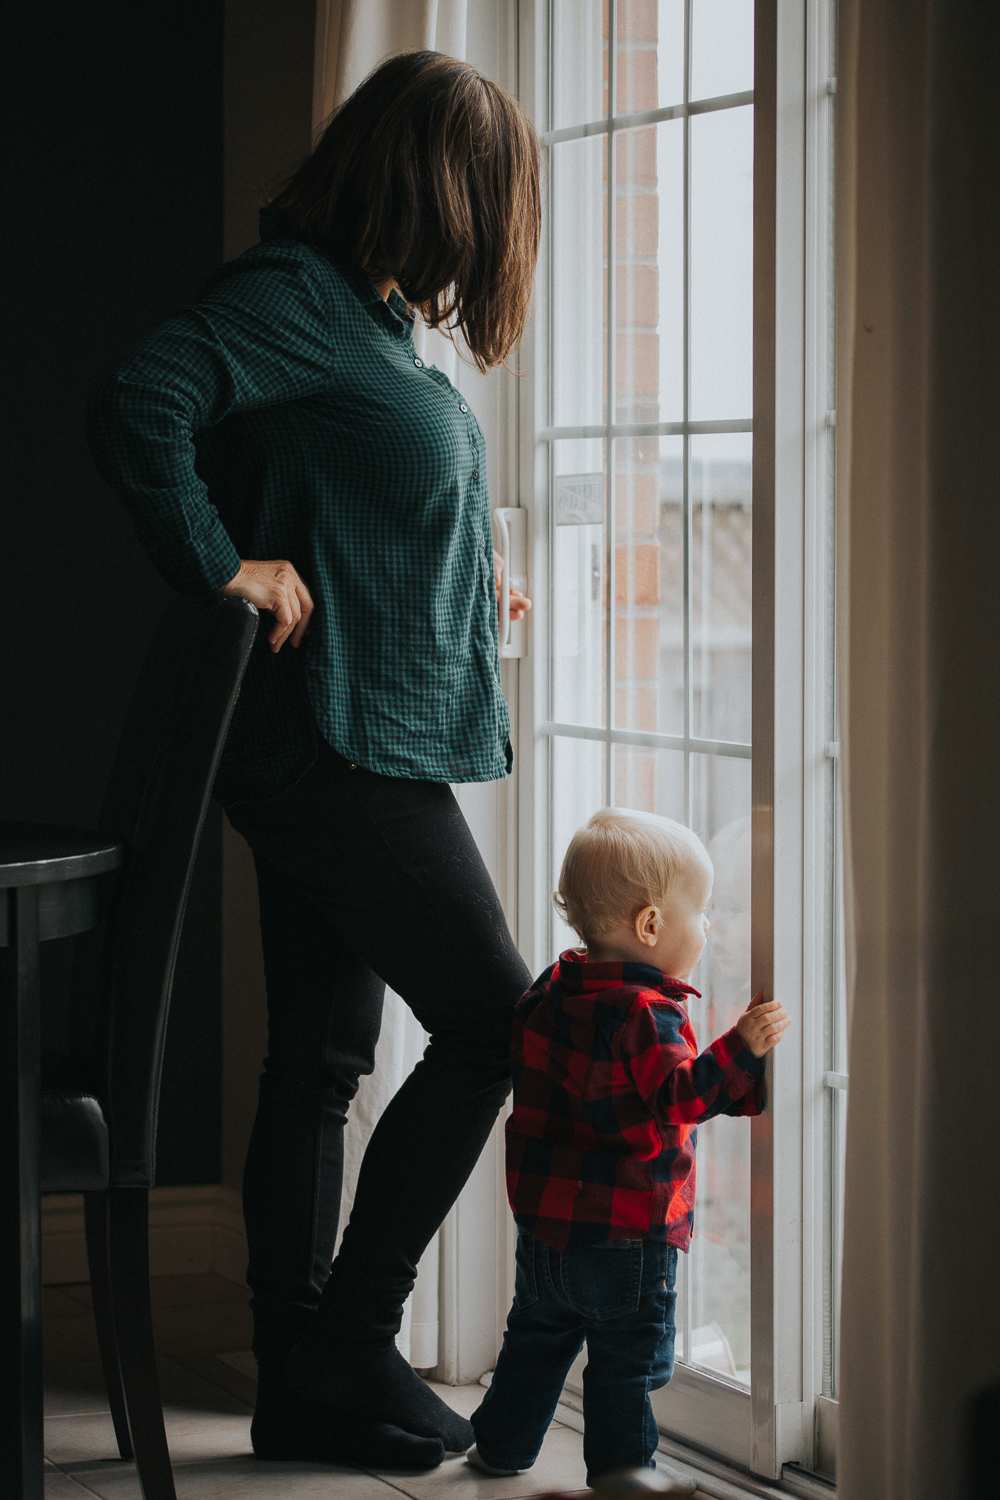 1 year old toddler boy in red shirt looking out window with grandma - Stouffville child photography